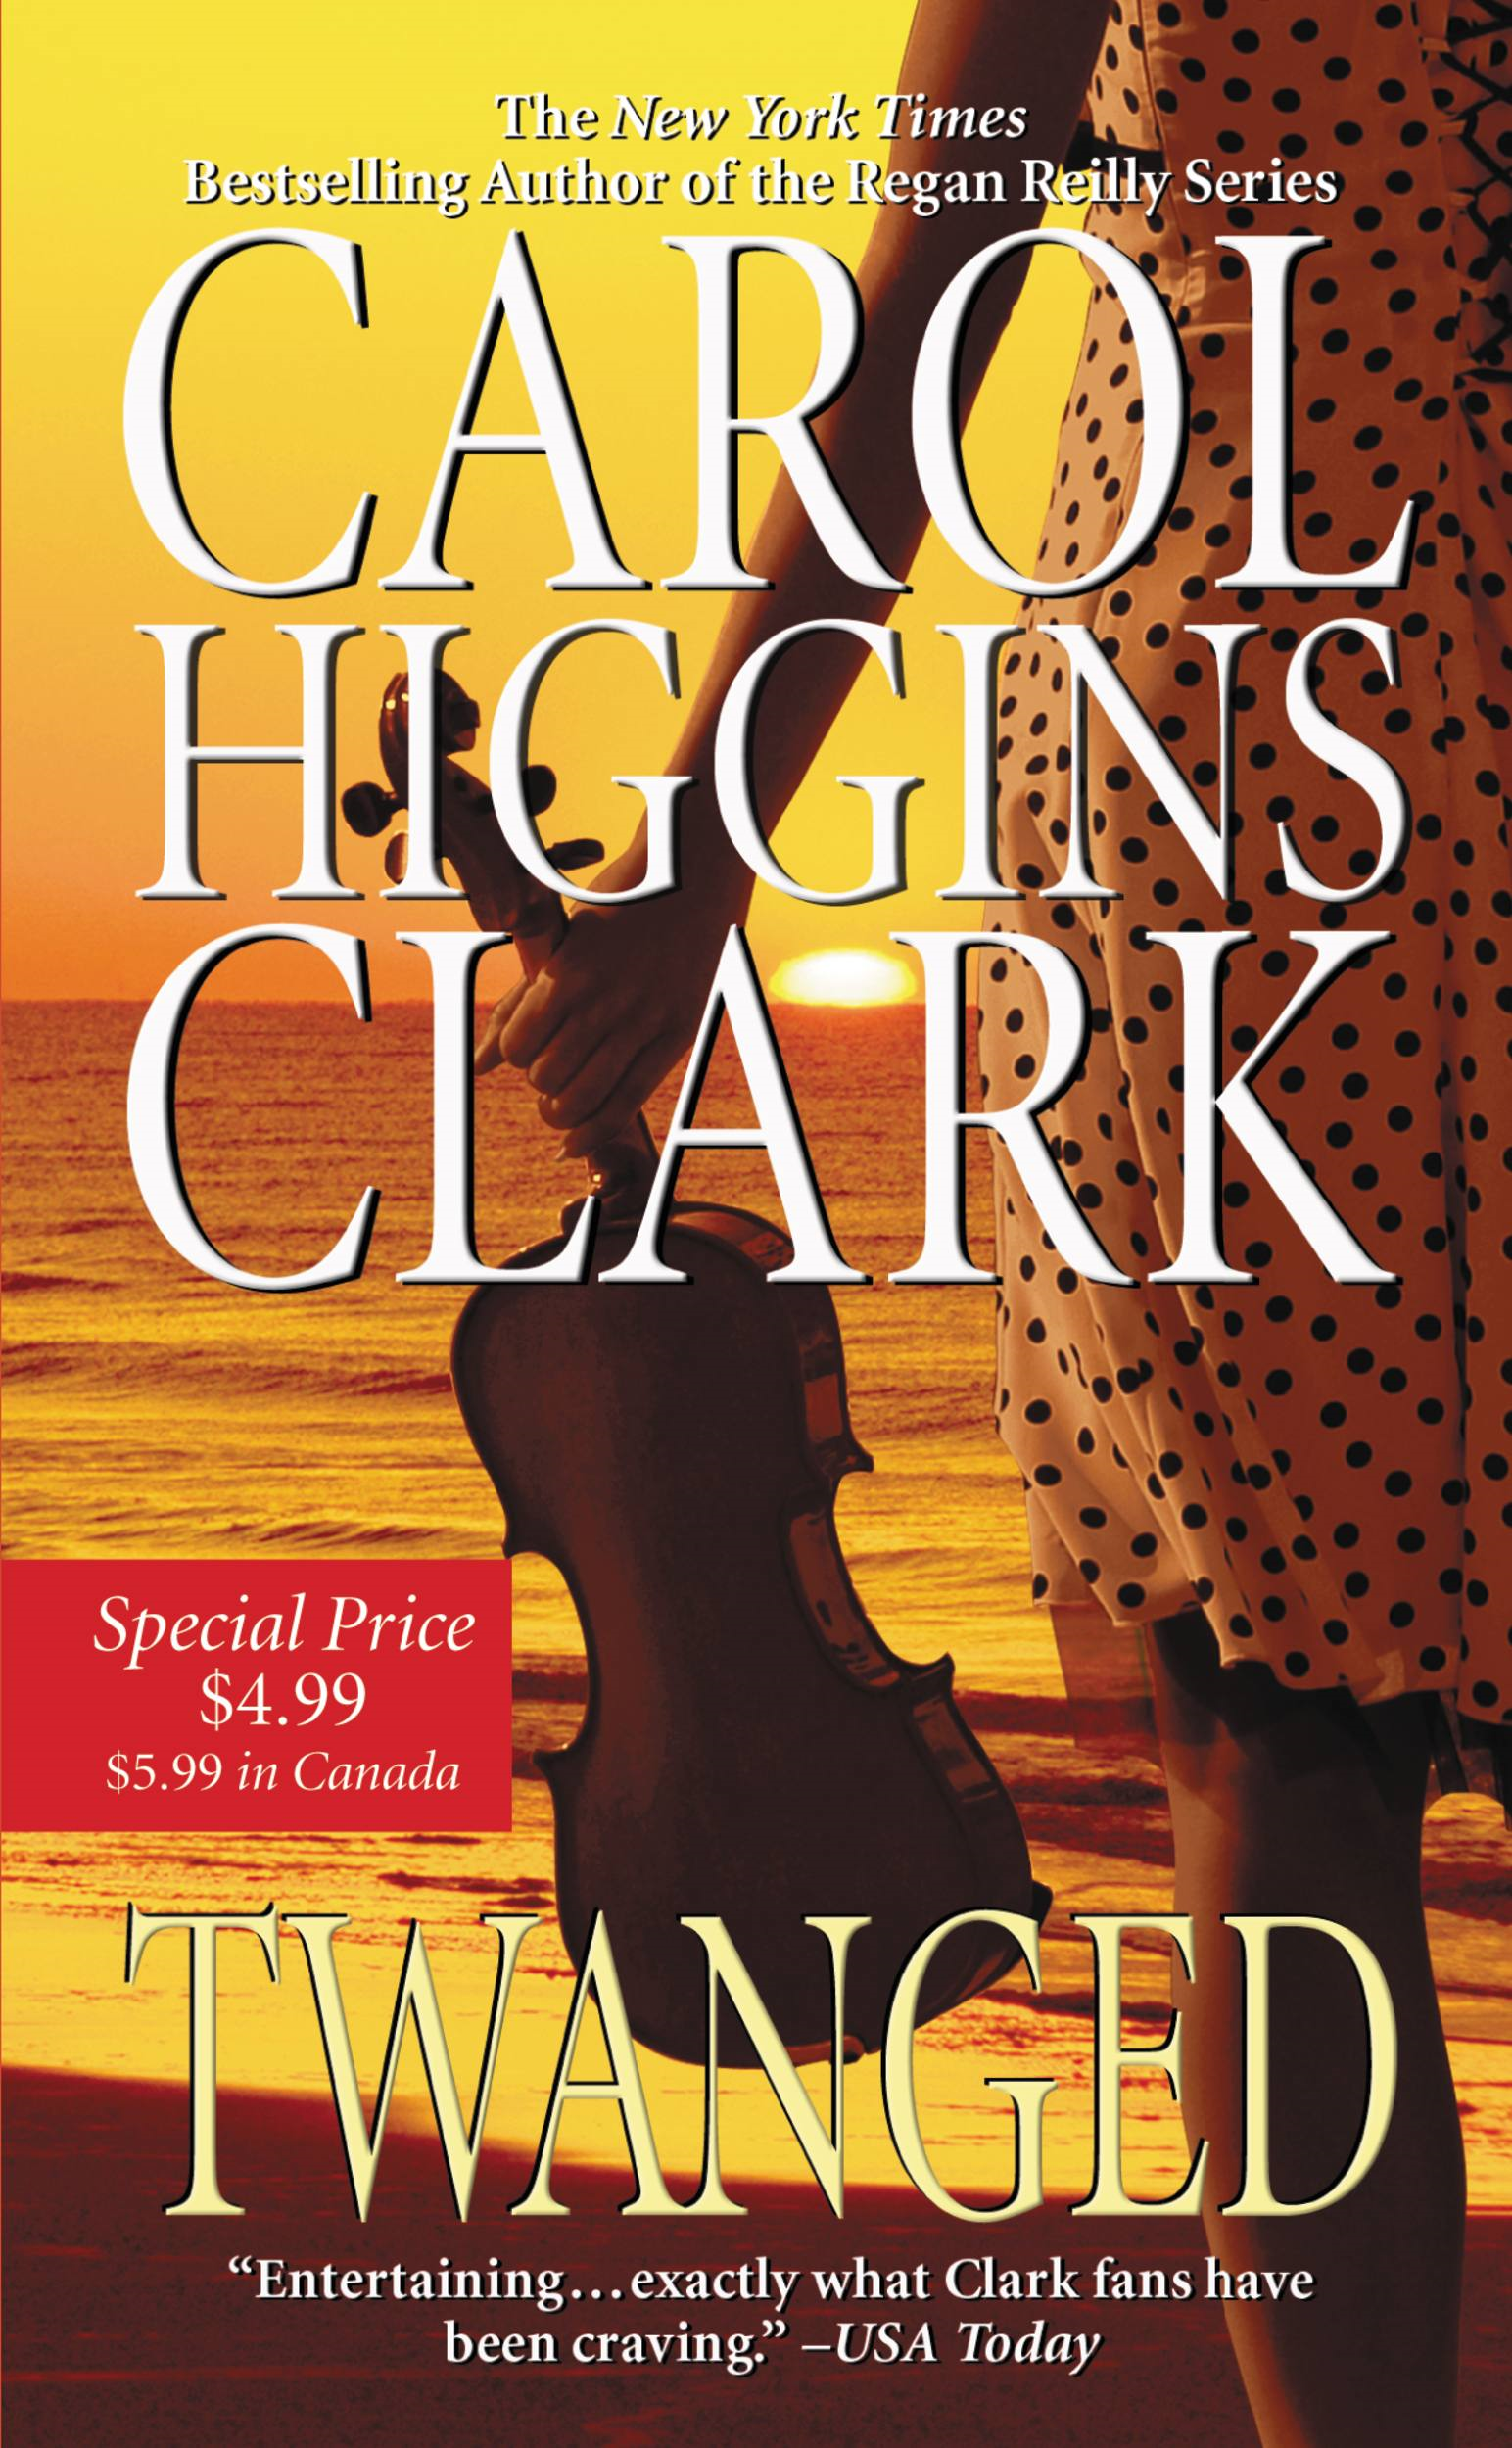 Twanged By: Carol Higgins Clark